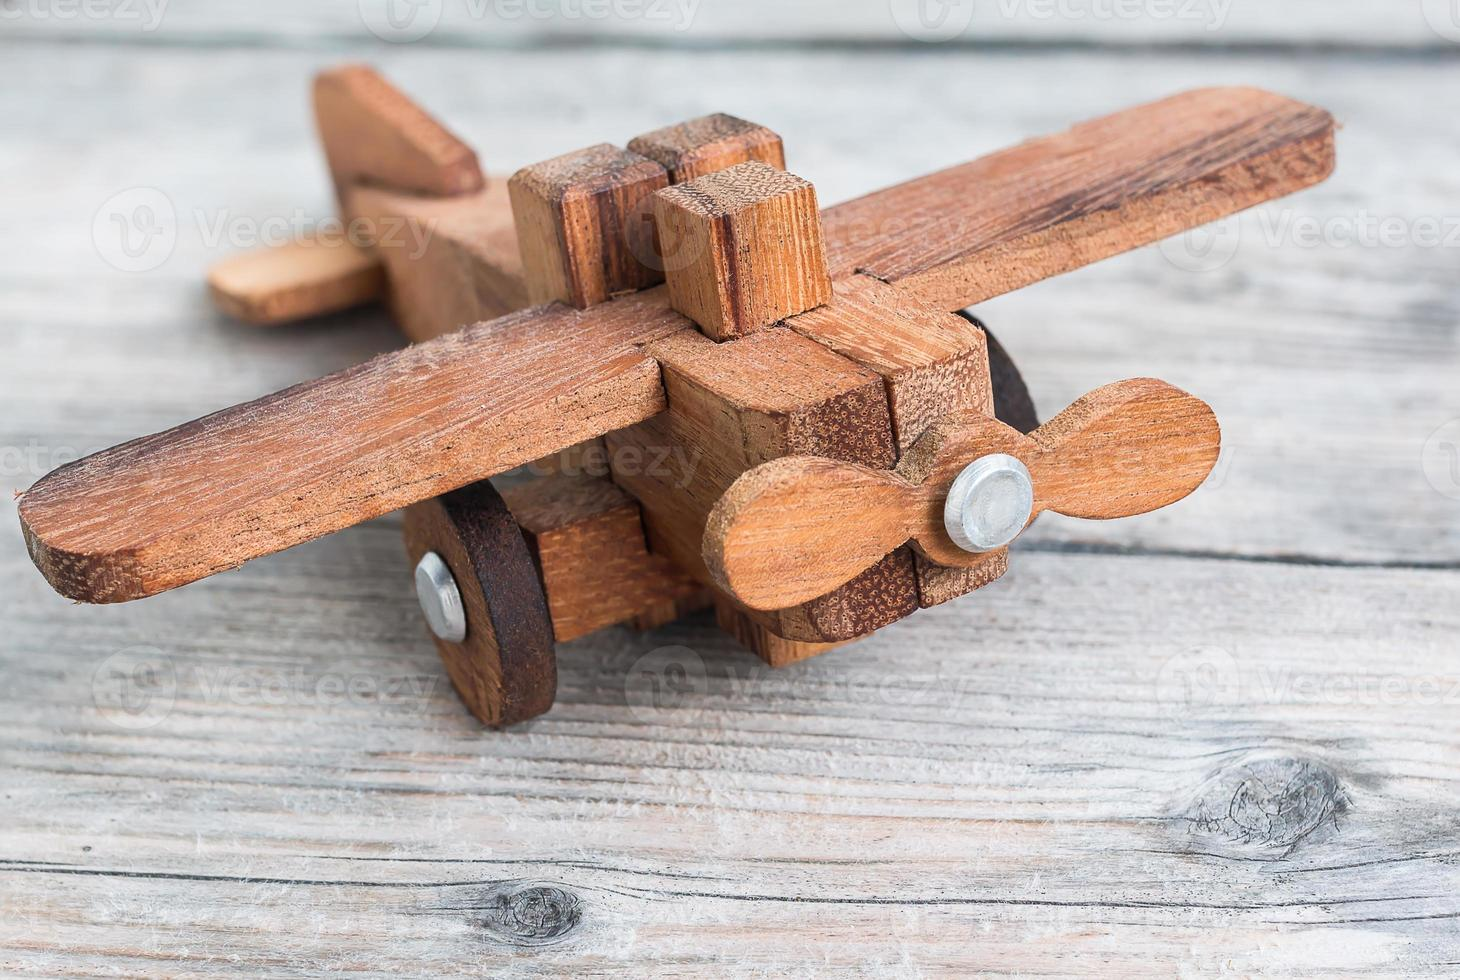 close-up of a wooden toy plane hand carved model photo